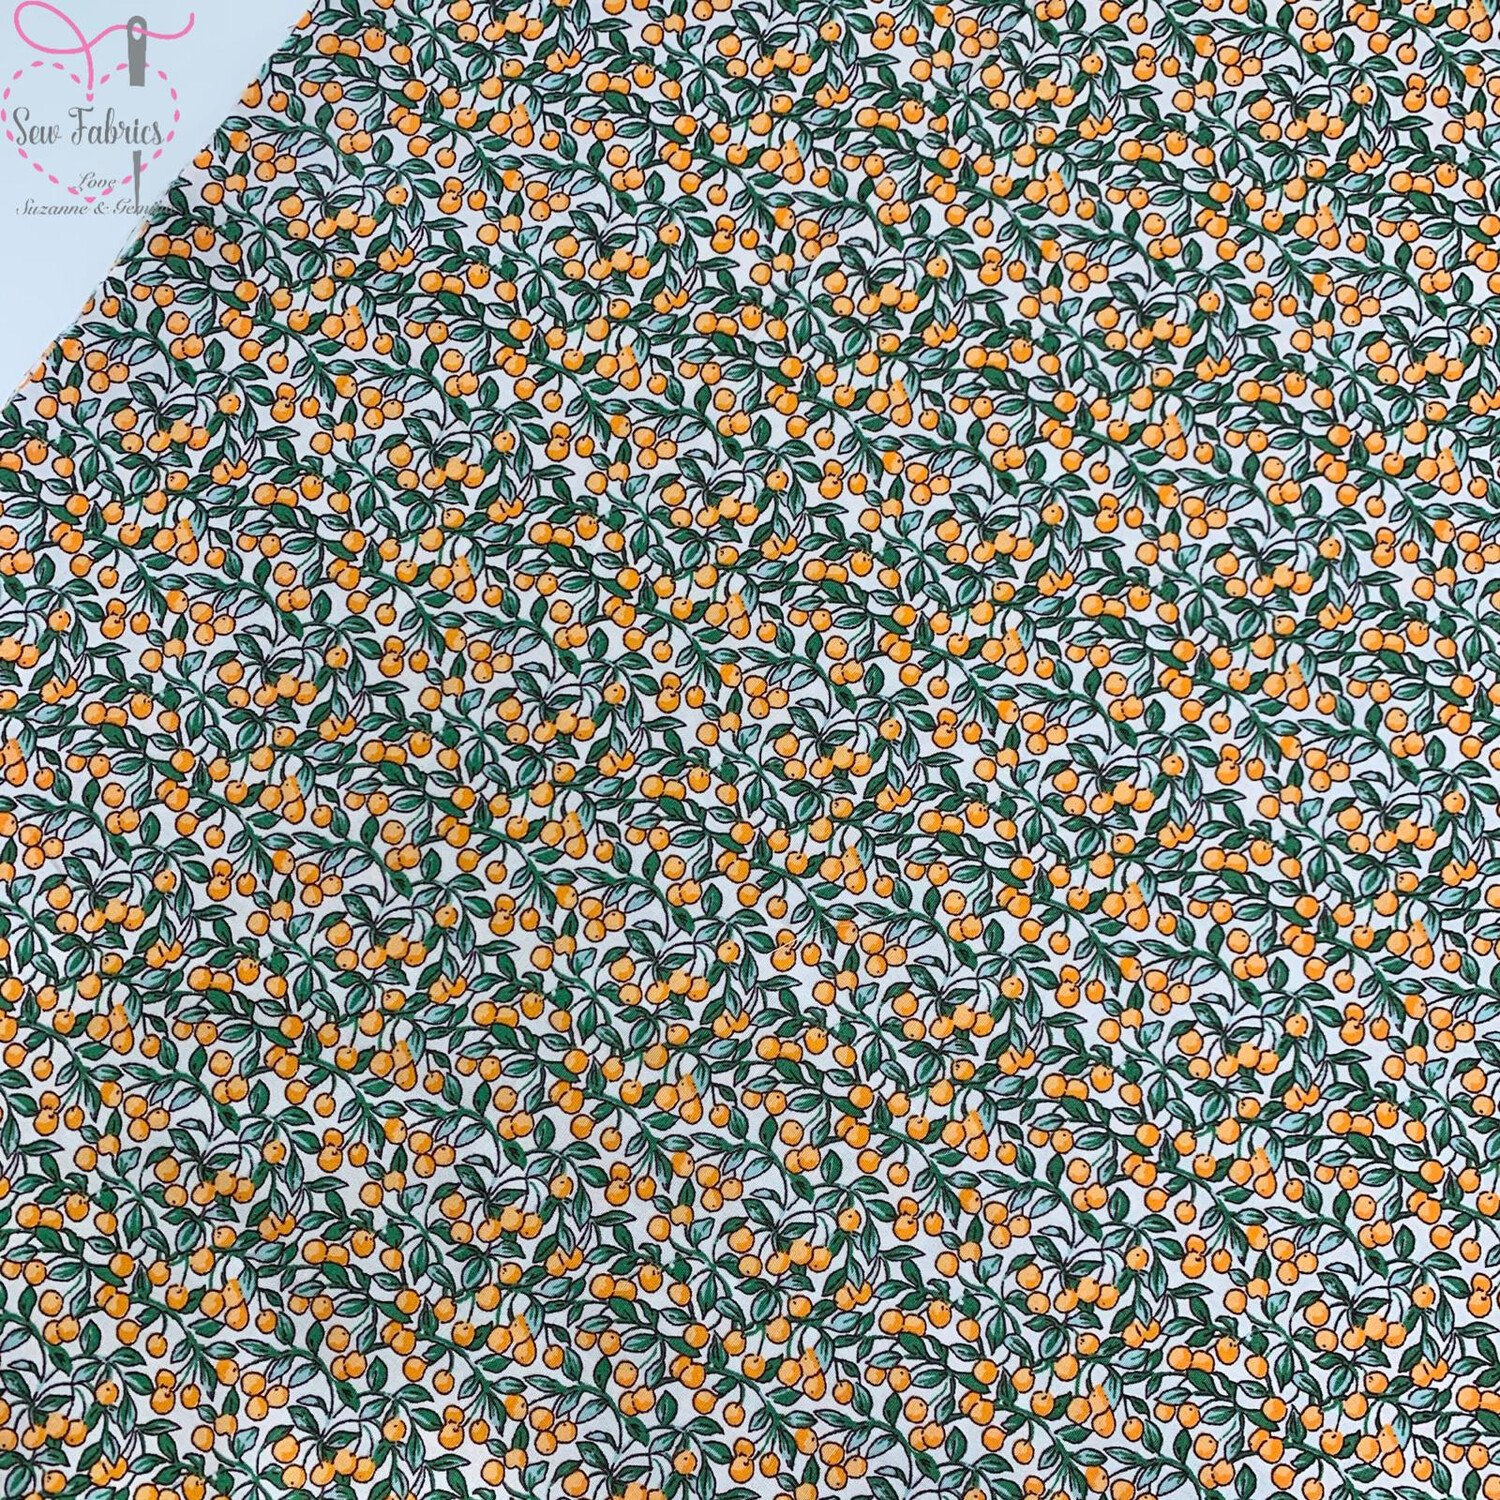 Rose and Hubble Orange Berries Floral Fabric 100% Cotton Poplin Flower Fruit Material Sewing